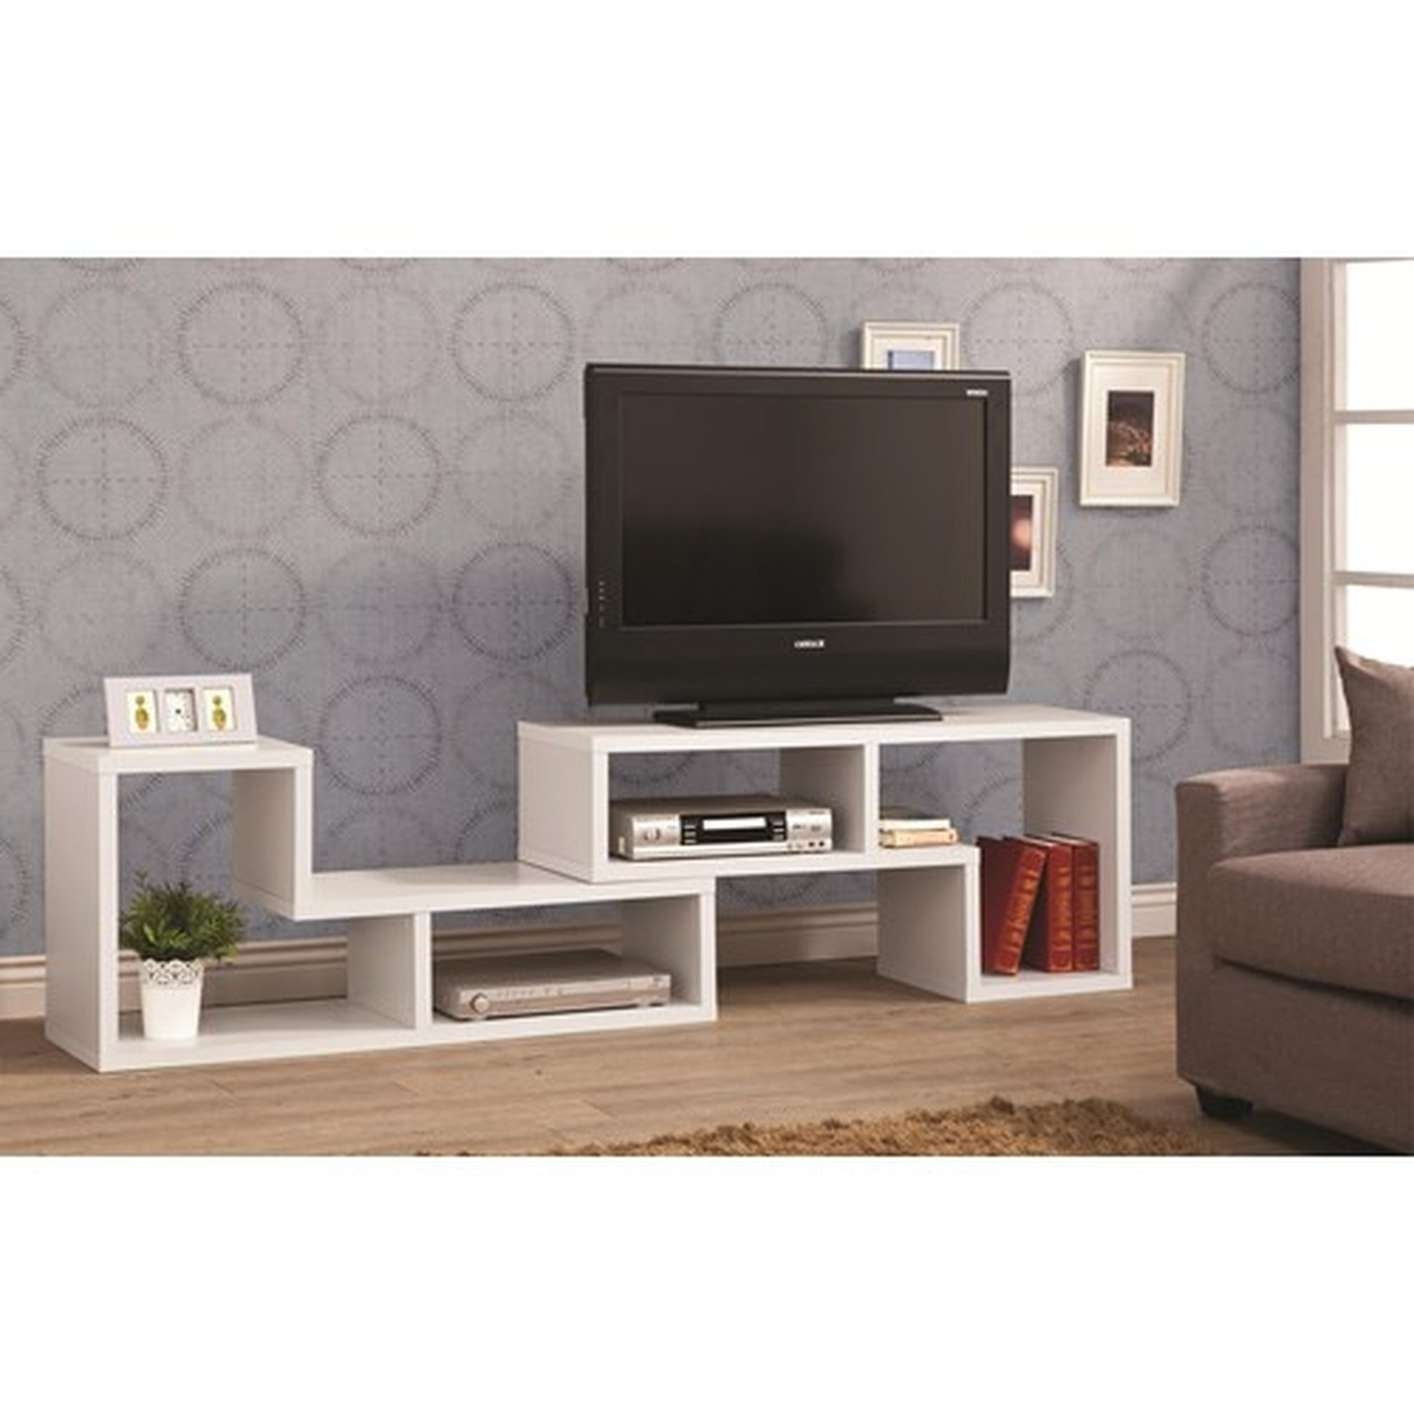 Living Room : Styled Modern Tv Stand In Orange And Black Finishing Intended For Hardwood Tv Stands (View 7 of 15)